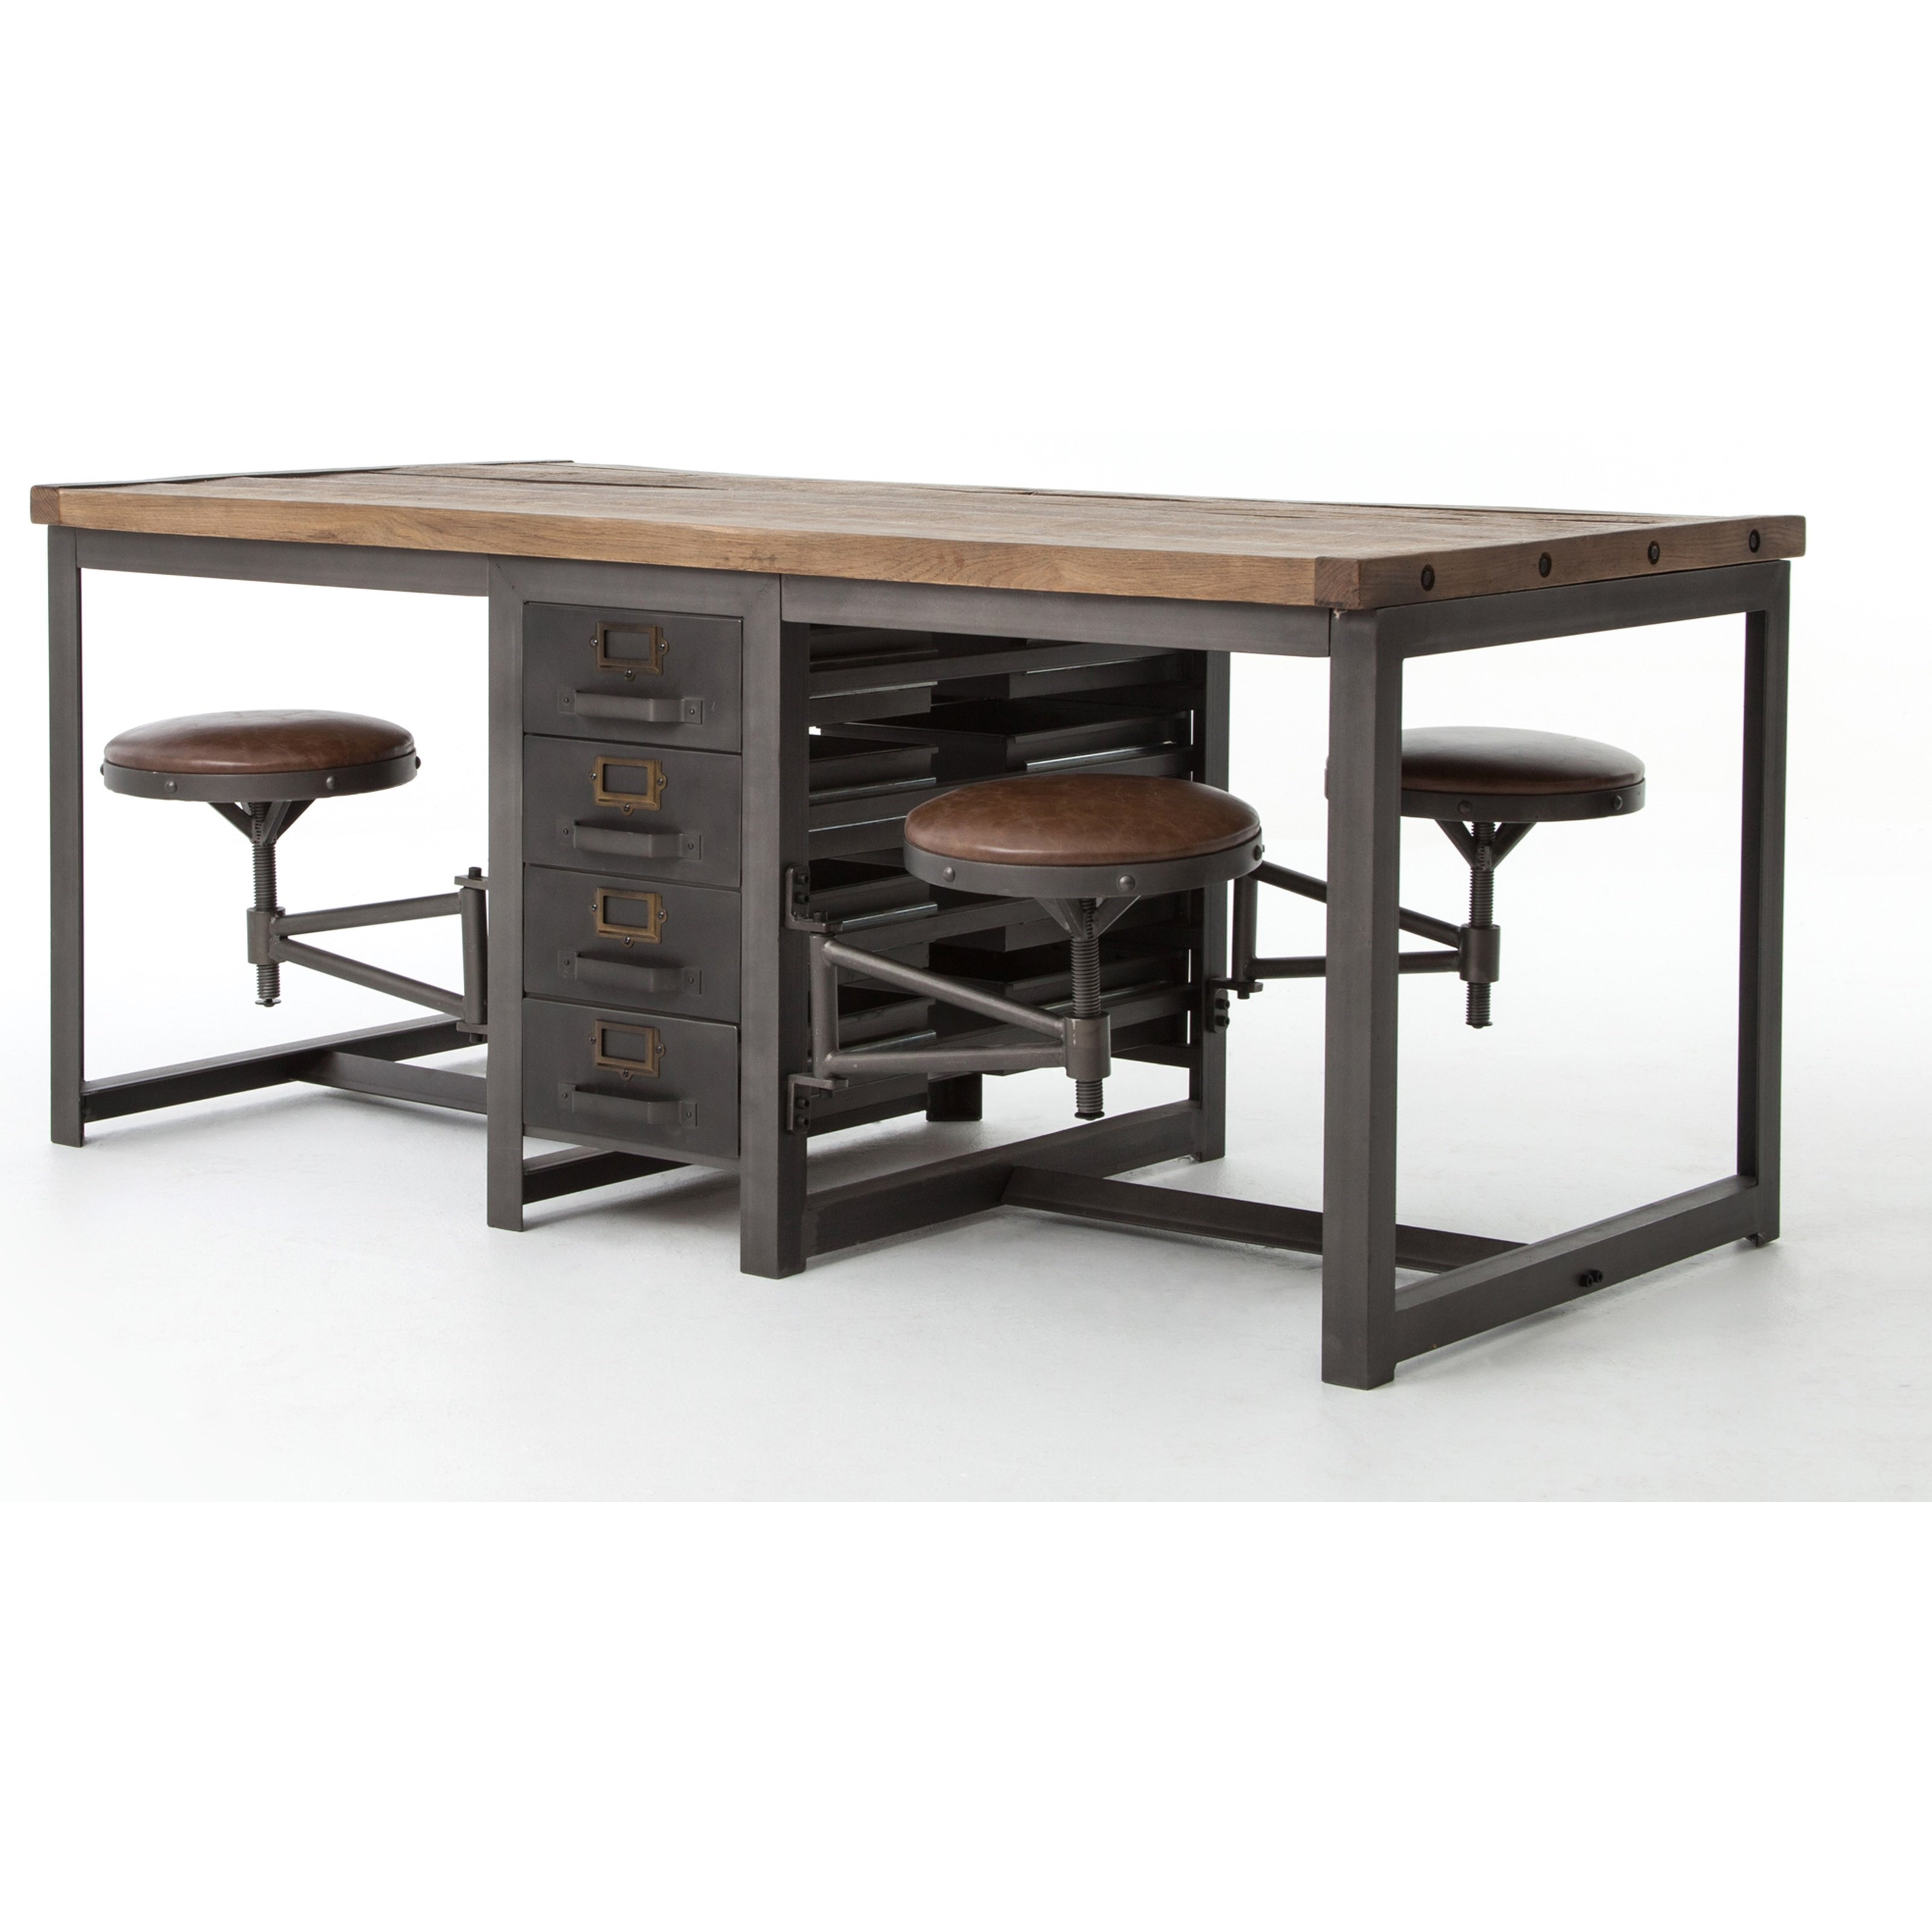 Four Hands Hughes Rupert Work Table With Brown Leather Seats. Hughes  Collection